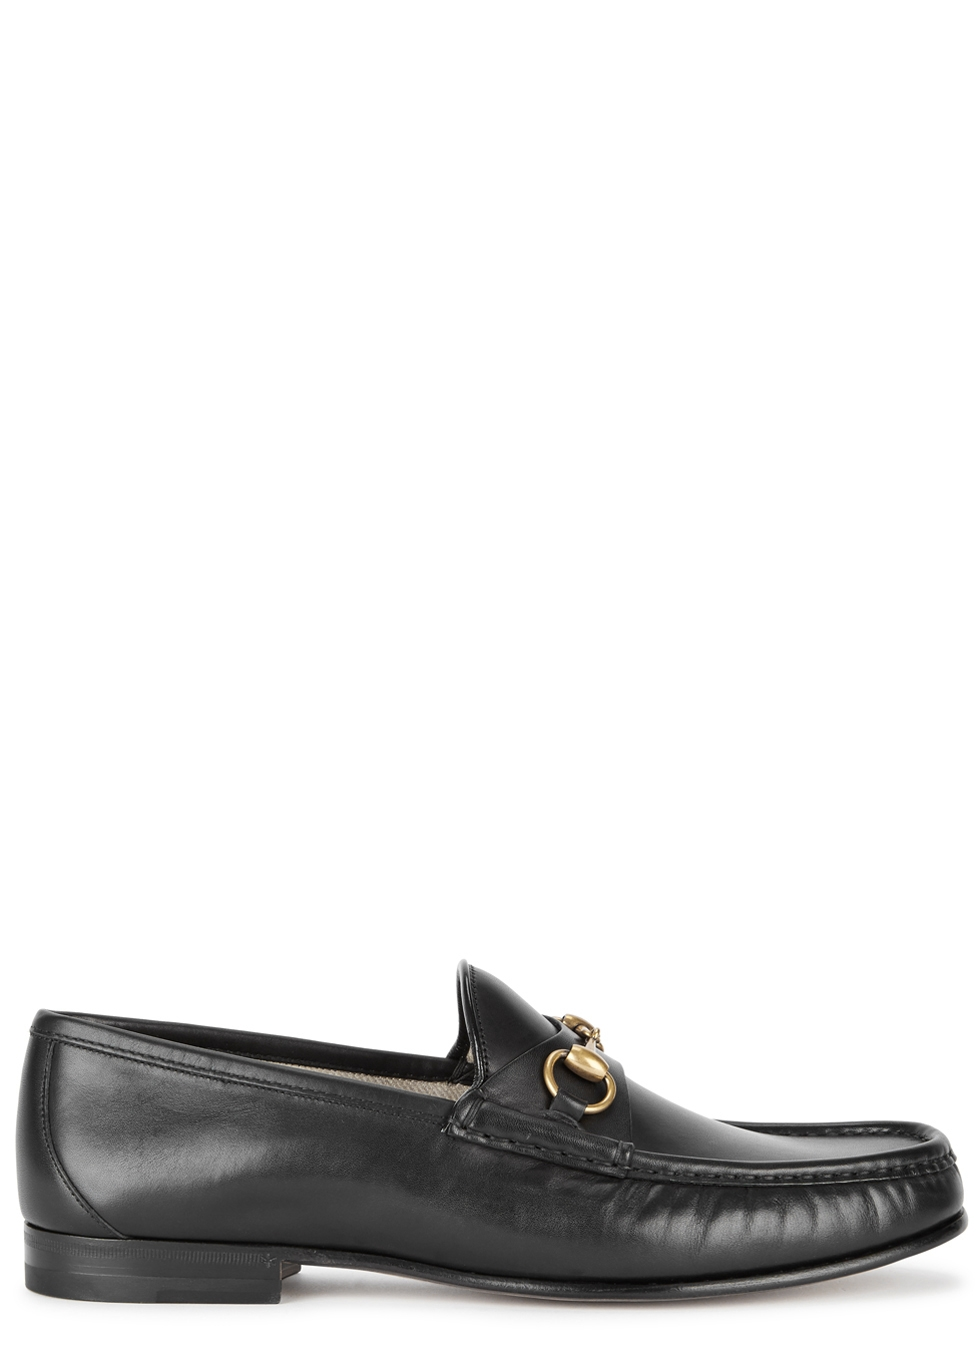 GUCCI 1953 BLACK HORSEBIT LEATHER LOAFERS